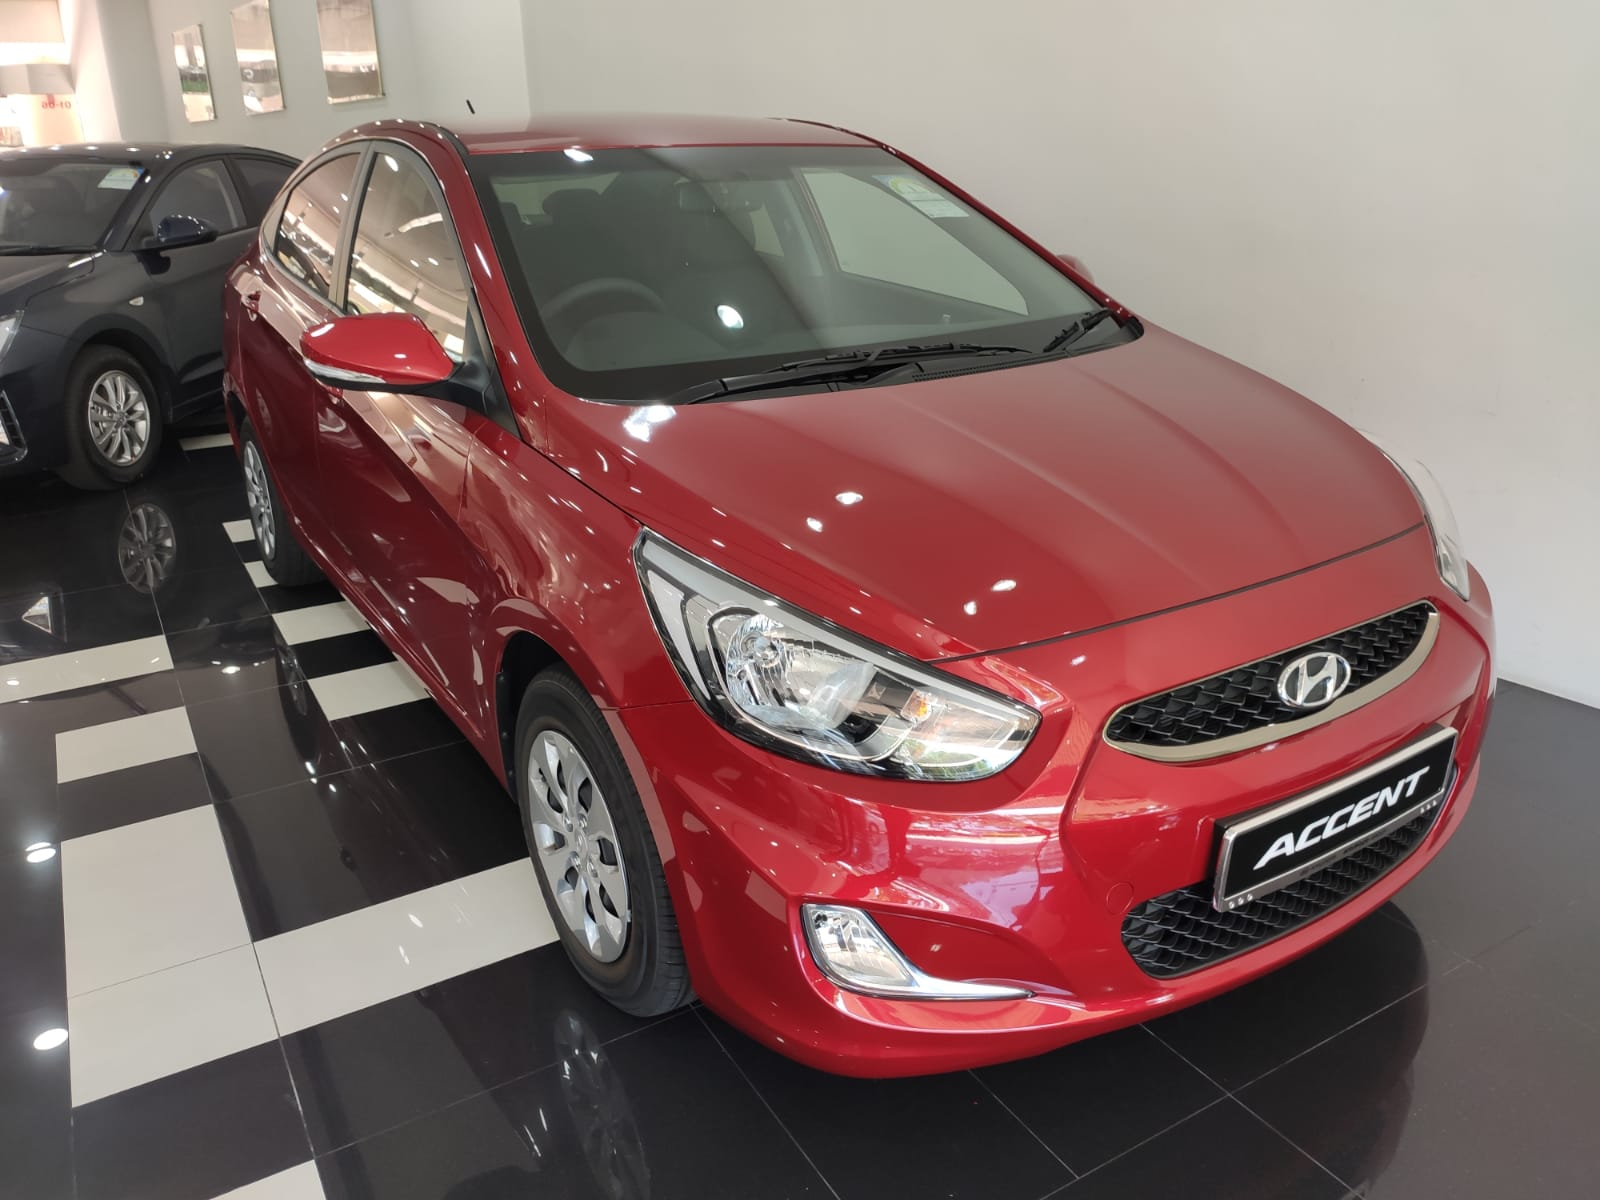 Hyundai Accent 1.4A (For Rent)